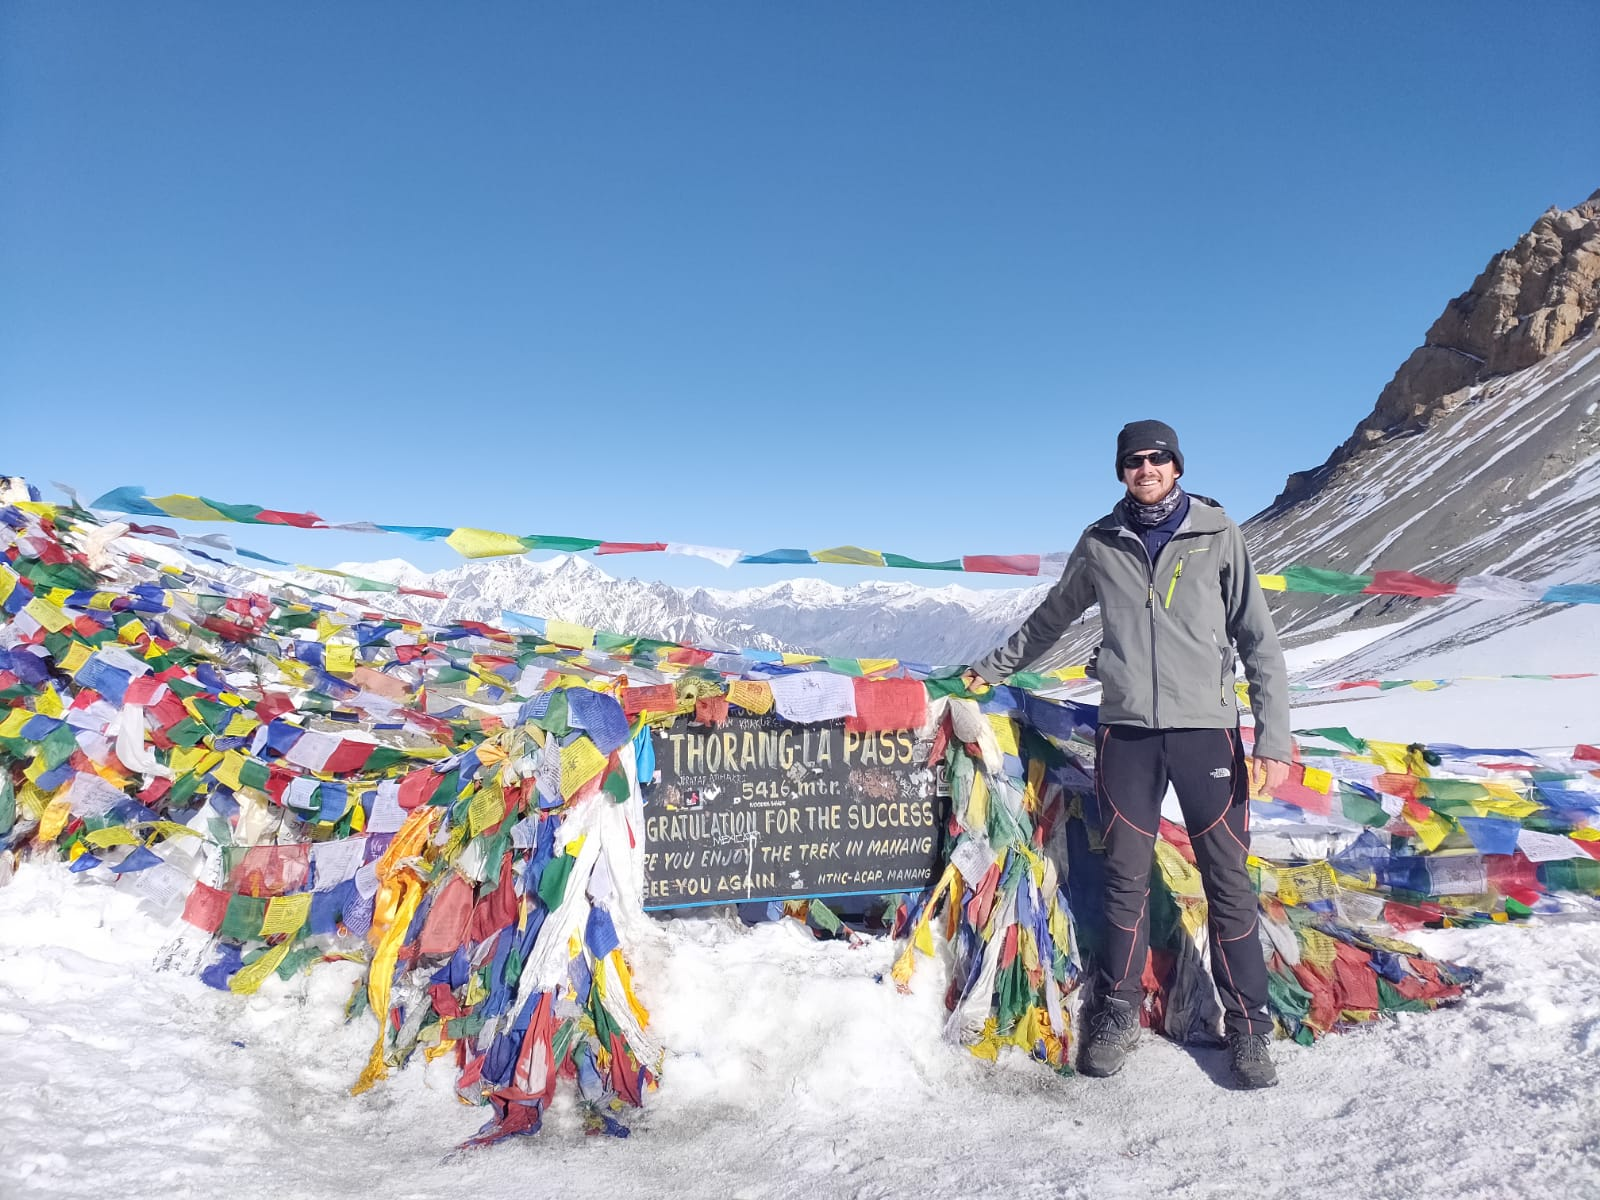 A man posing with a sign for Thorong-La Pass in Nepal surrounded by prayer flags